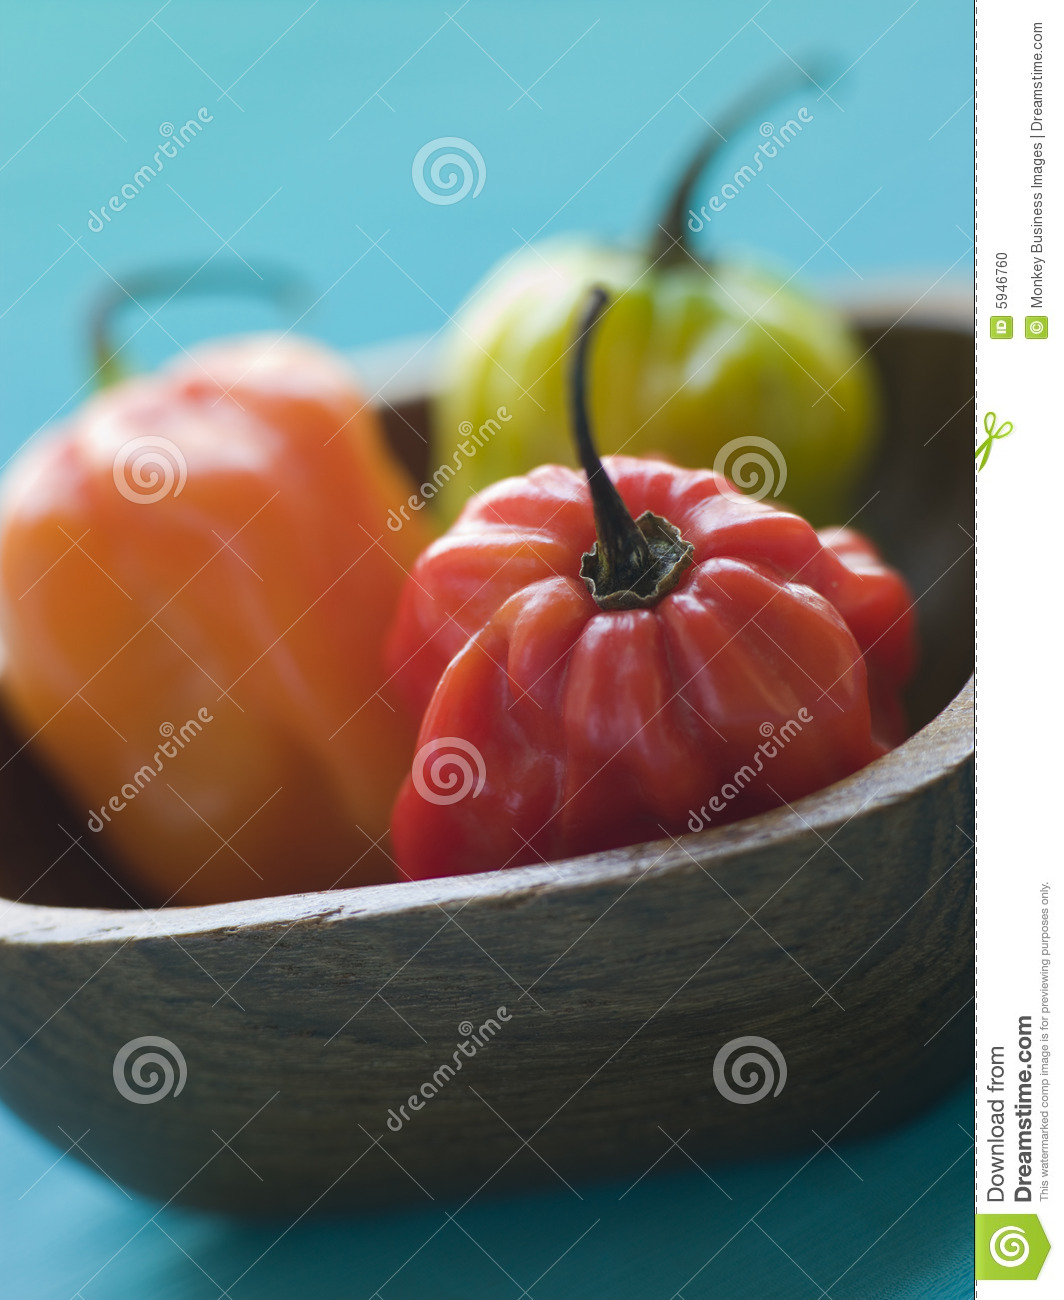 Scotch Bonnet Chilies In a Wooden Dish